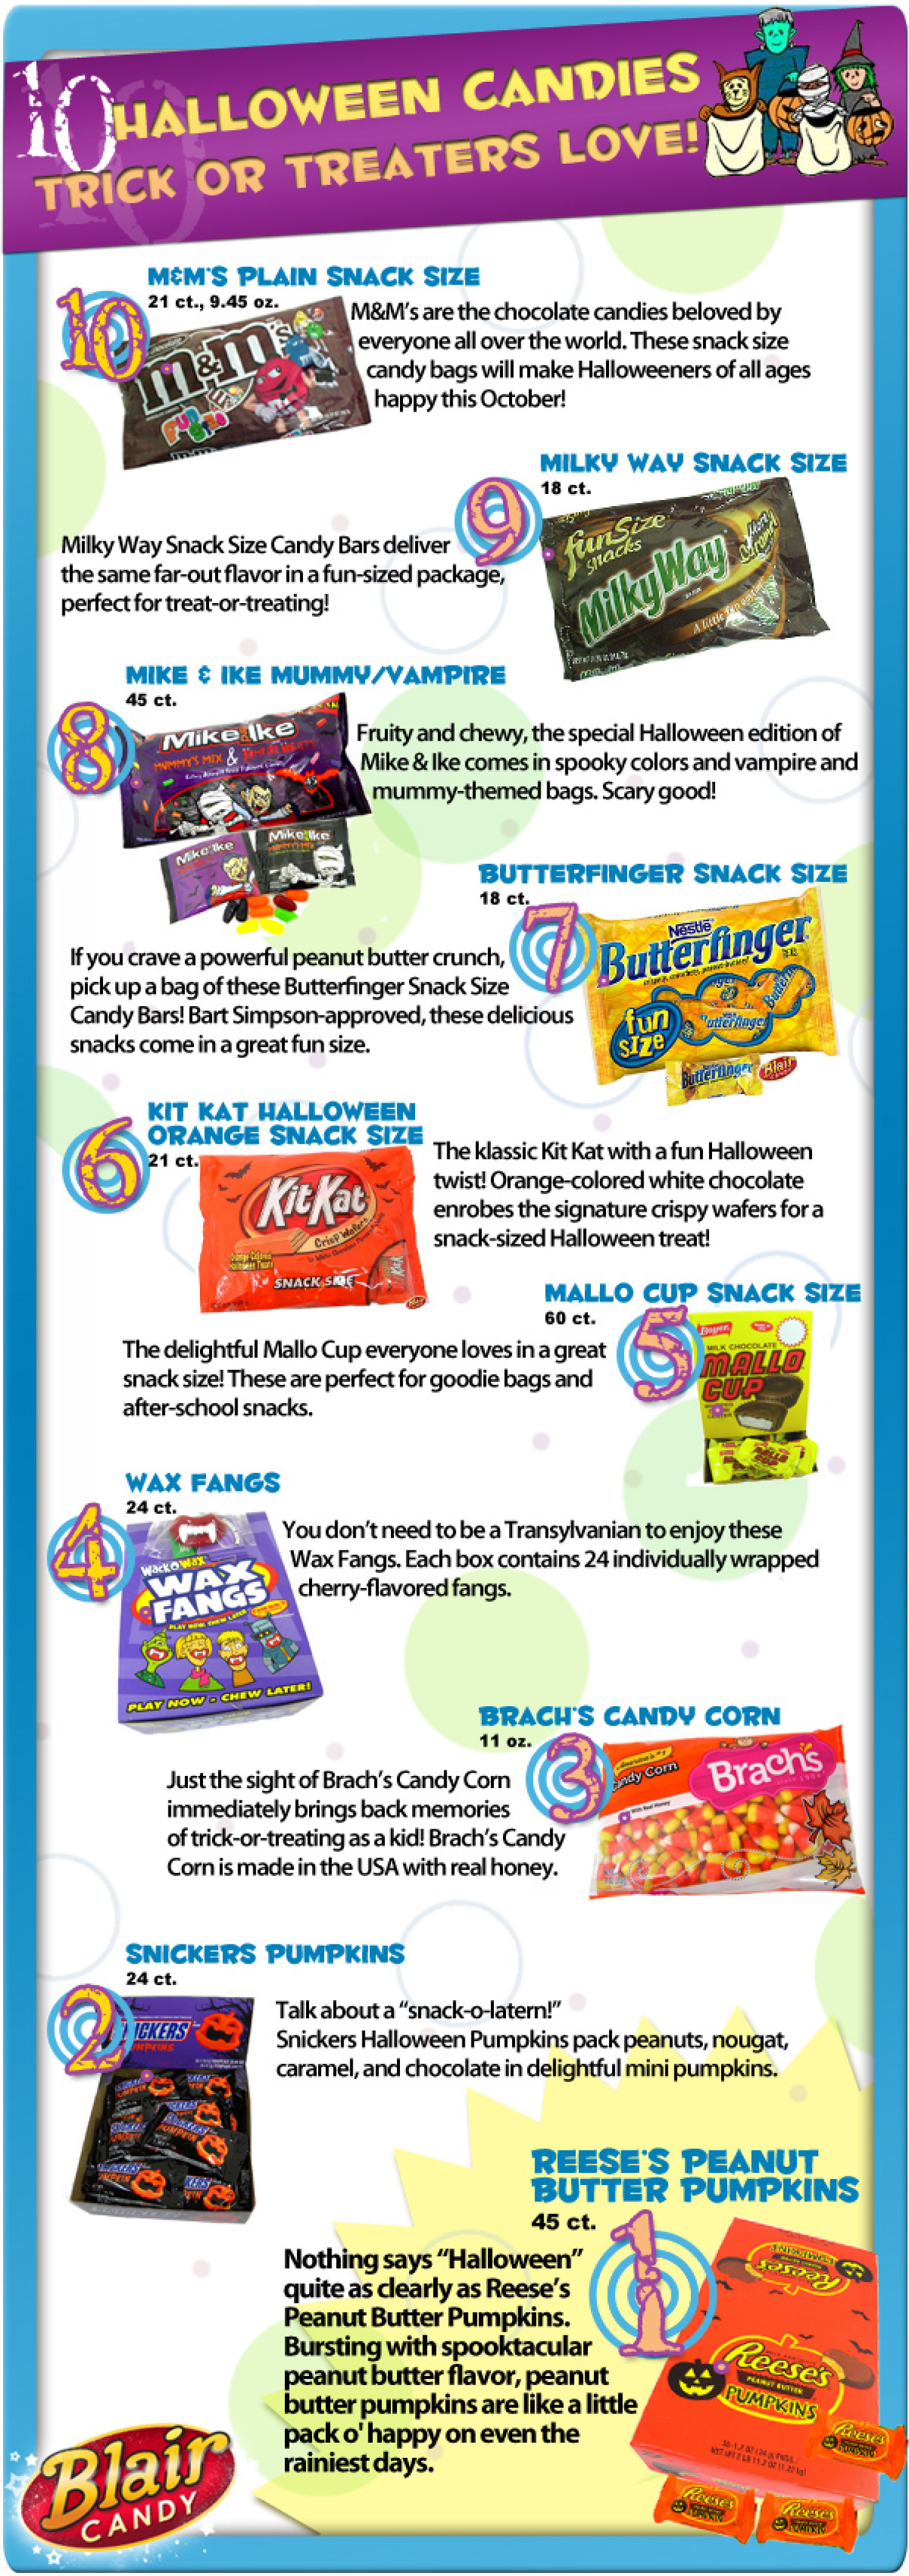 the top 10 halloween candy bars | visual.ly